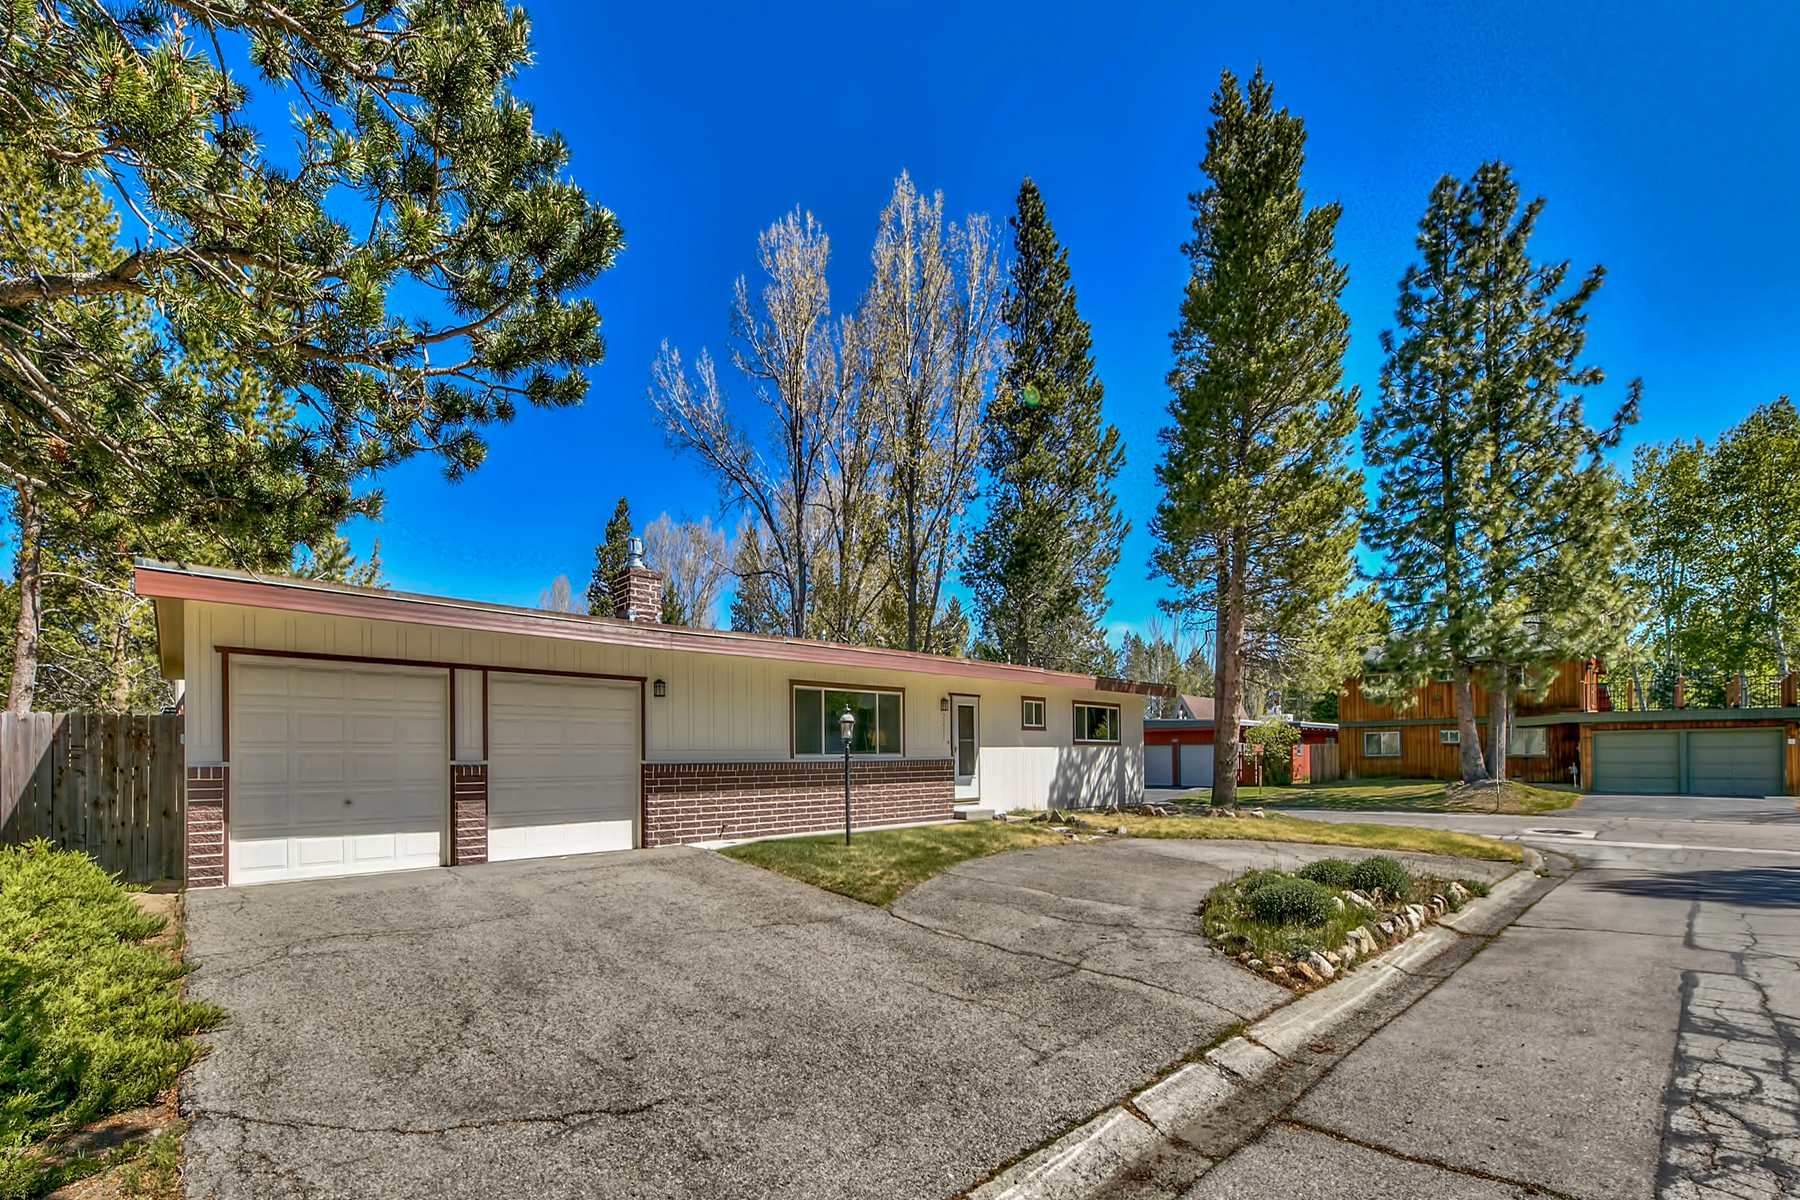 Property por un Venta en 2255 Inverness Drive, South Lake Tahoe, CA 96150 2255 Inverness Drive South Lake Tahoe, California 96150 Estados Unidos